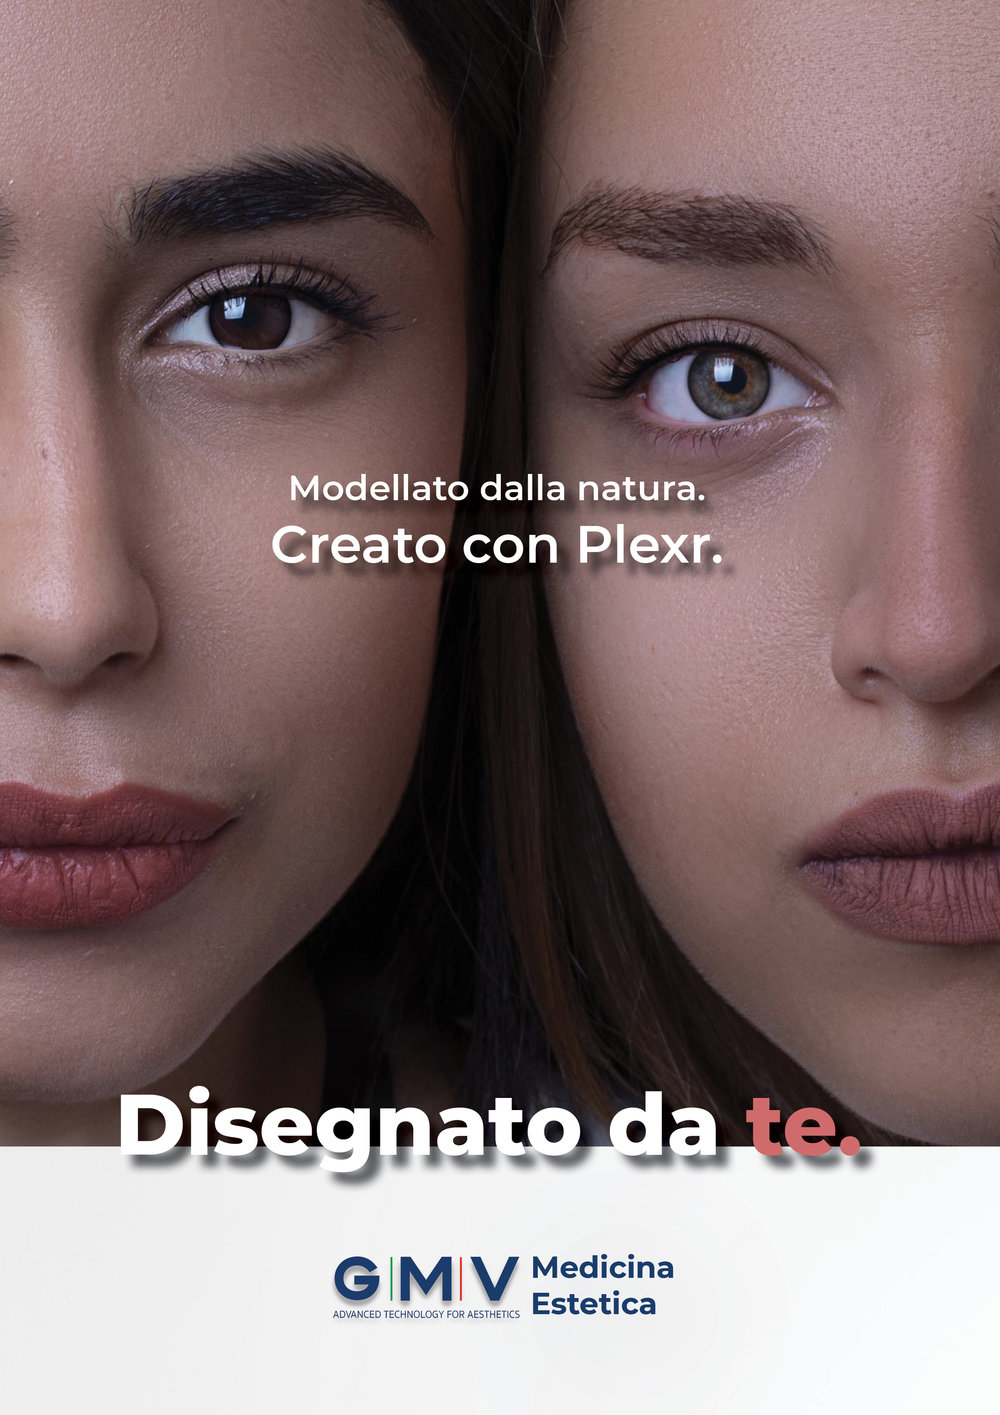 Translation: Shaped by nature. Created with Plexr. Designed by you.